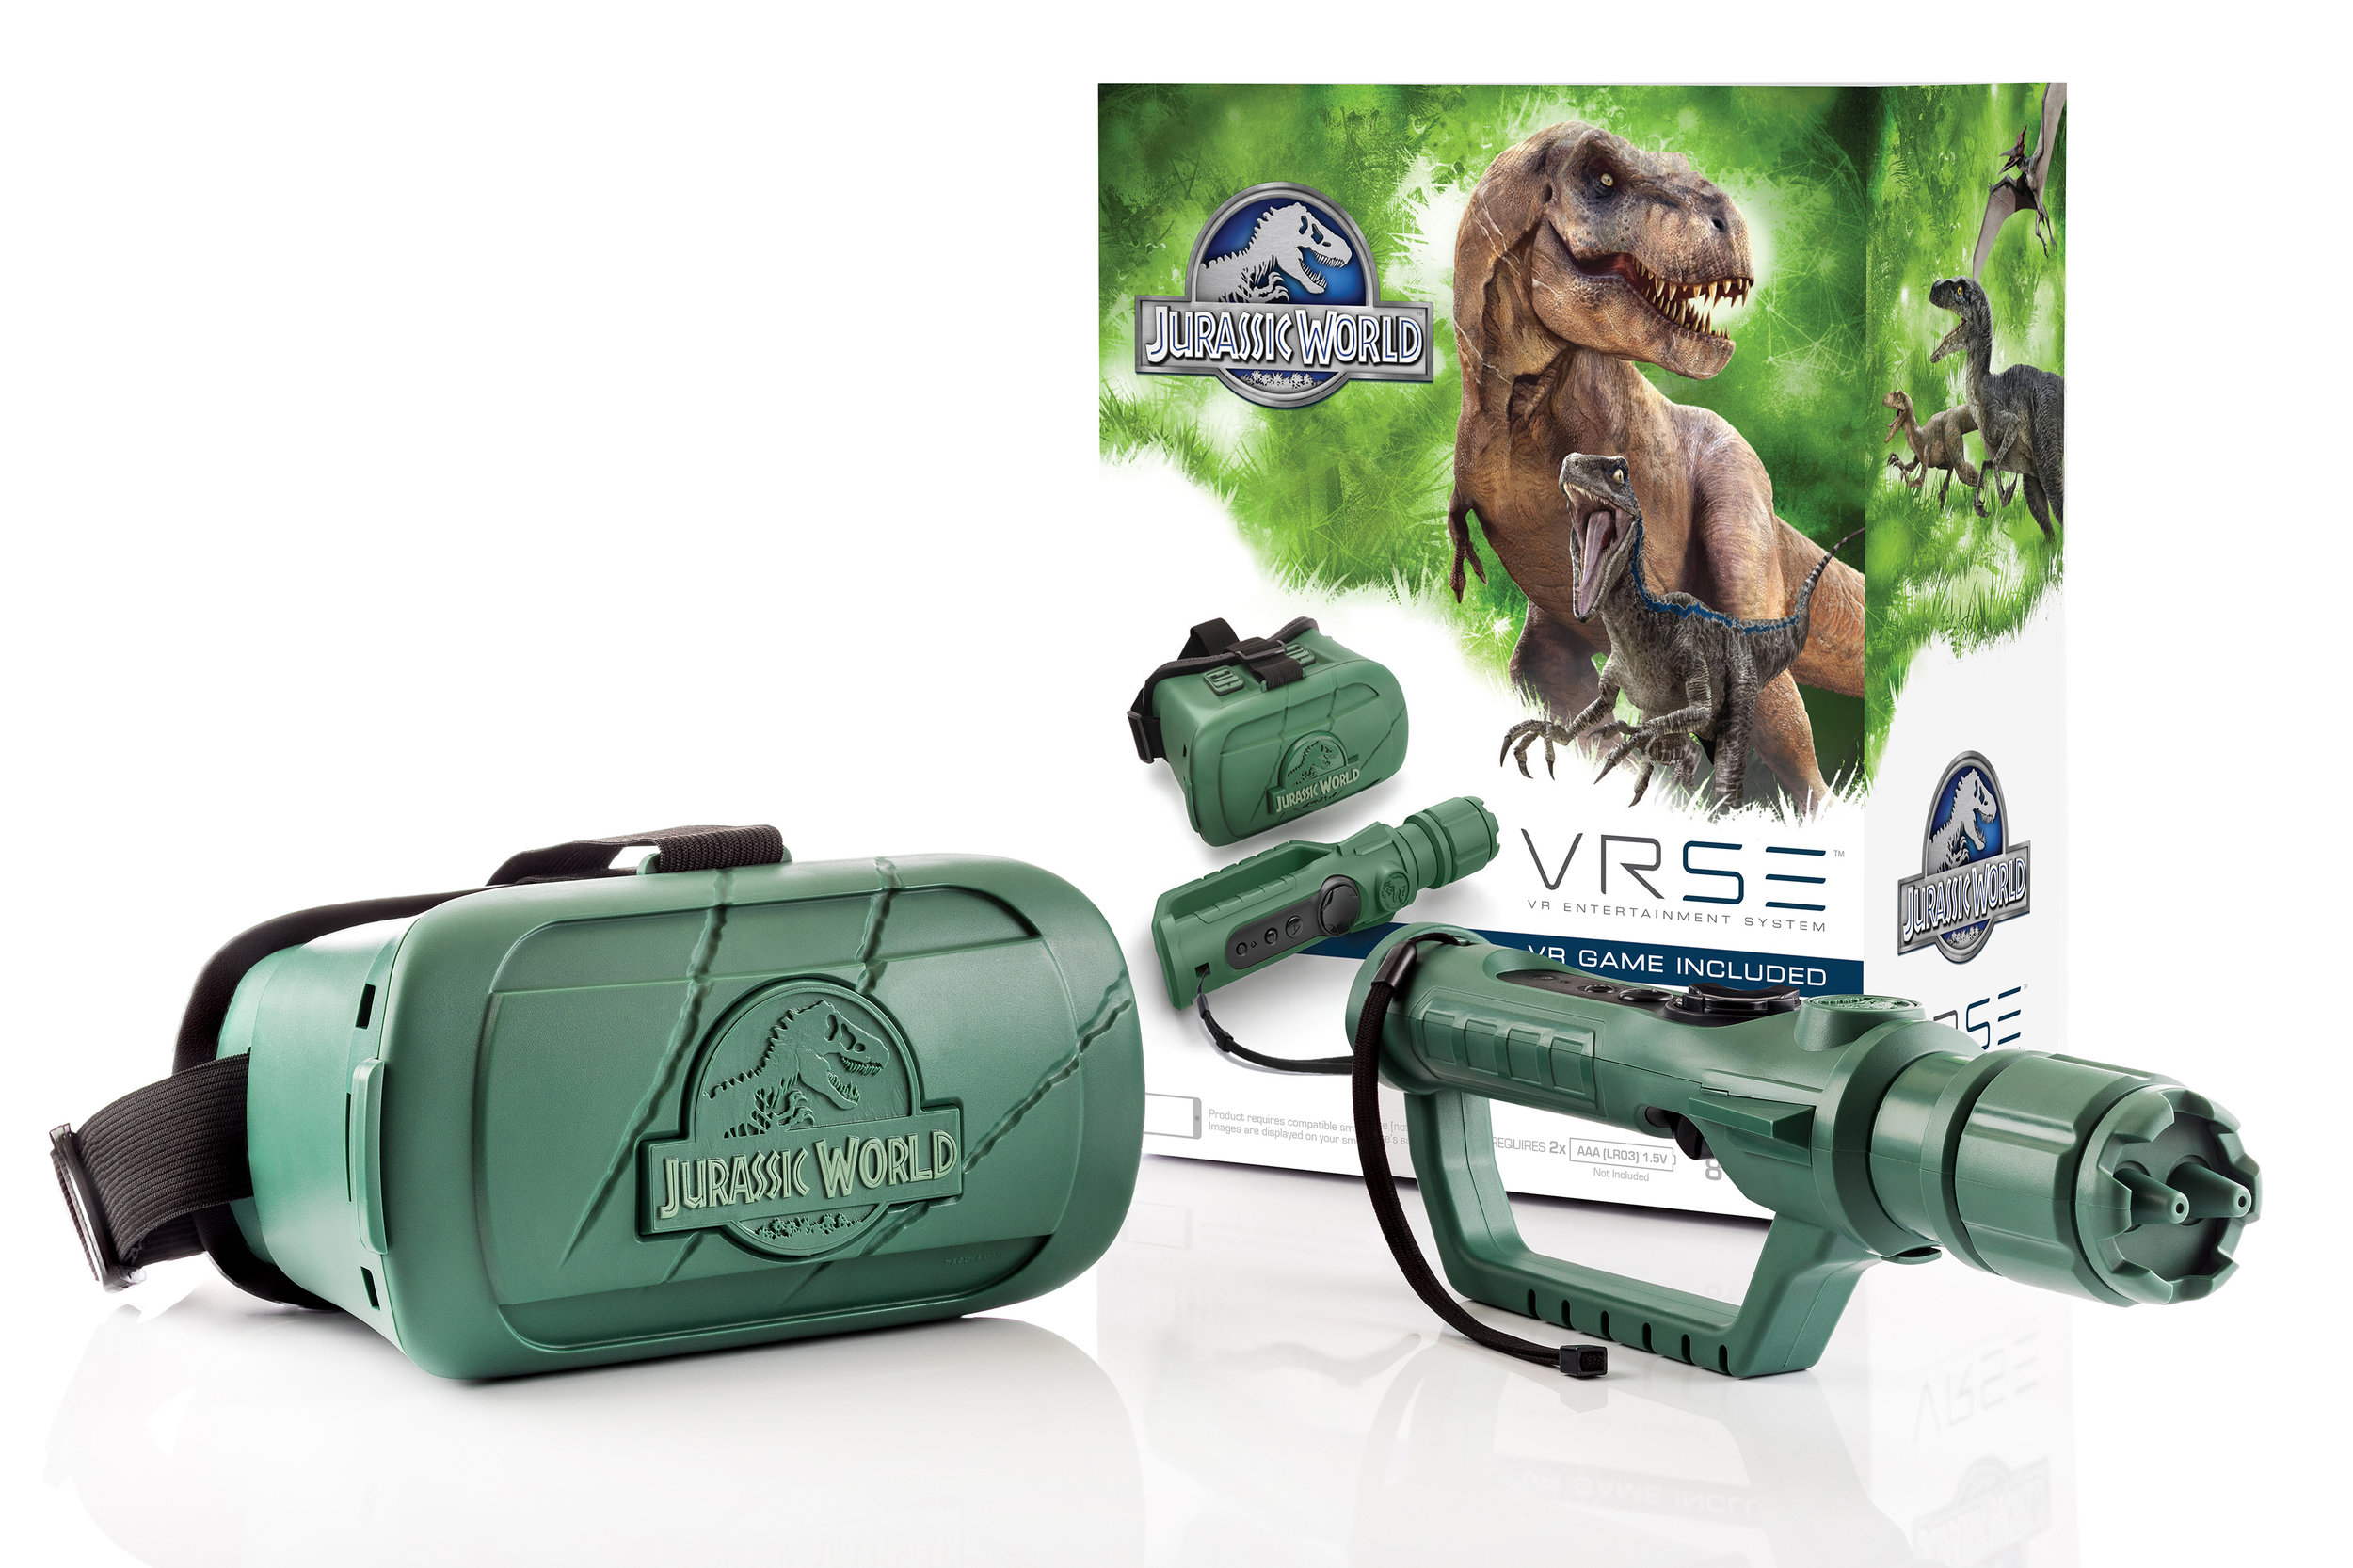 VRSE - Jurrasic - Headset, Controller & Box.jpg